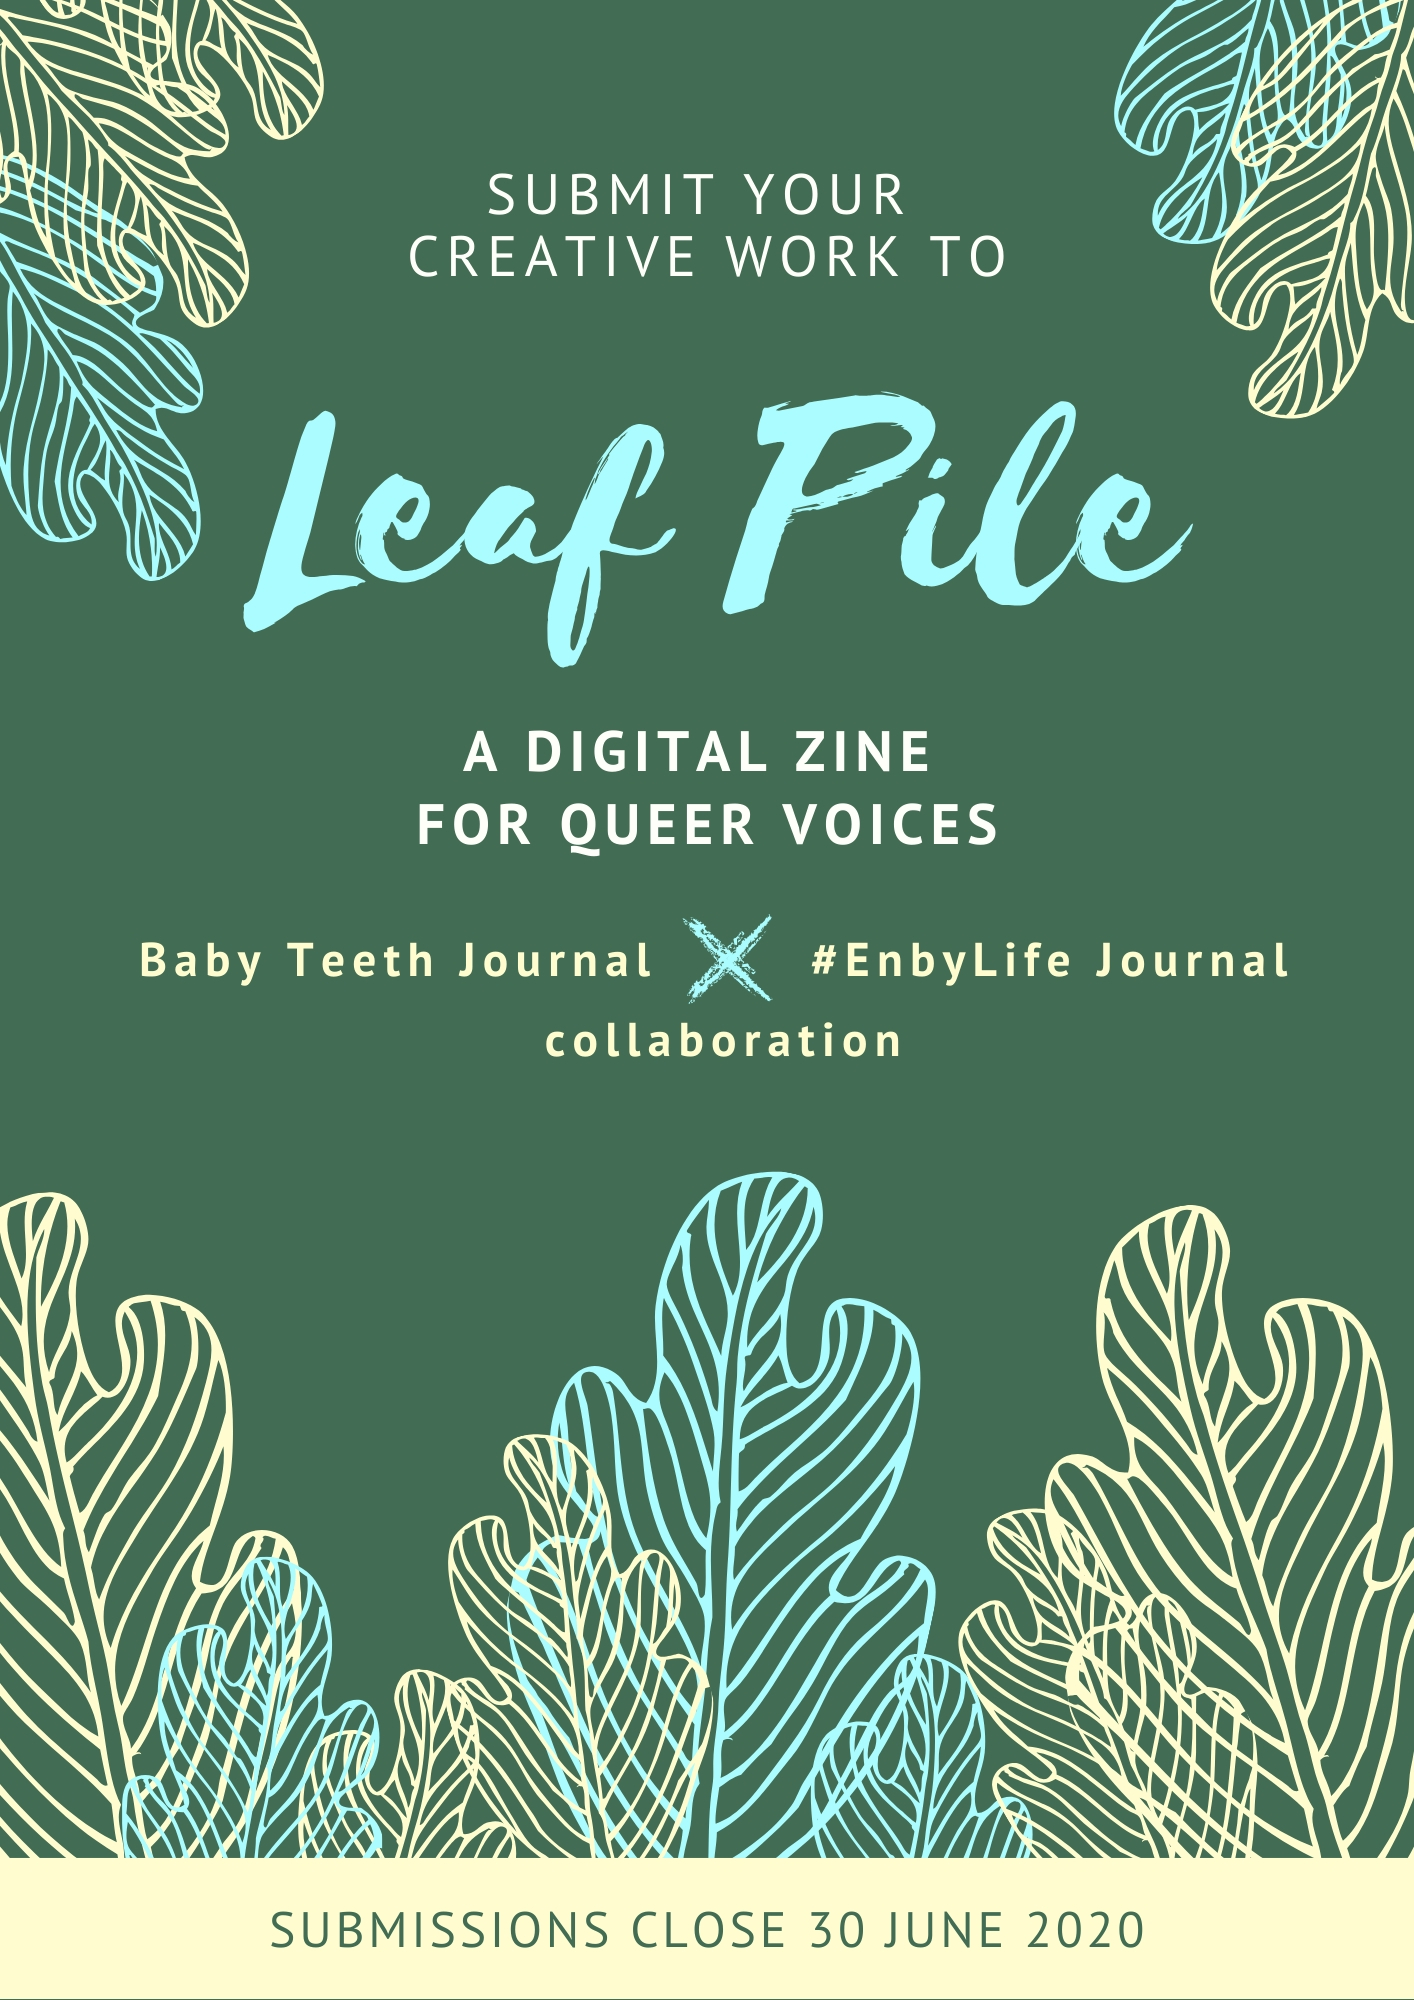 green leafy poster with the words 'submit your creative work to Leaf Pile, a digital zine for queer voices, Baby Teeth Journal x #EnbyLife Journal collaboration, submissions close 30 June 2020